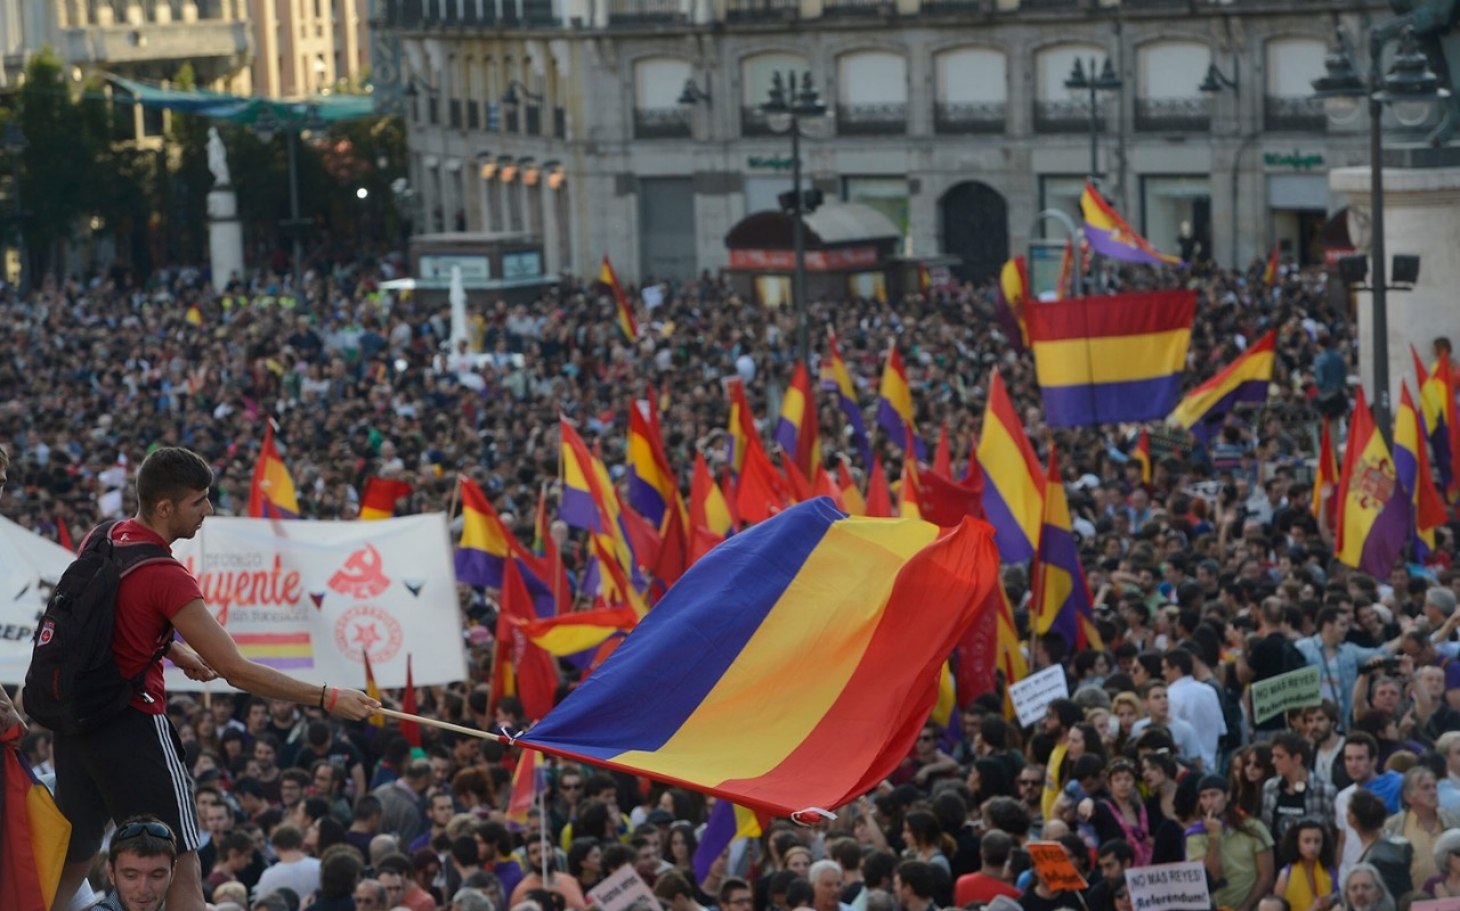 spain protesters call for referendum on monarchy